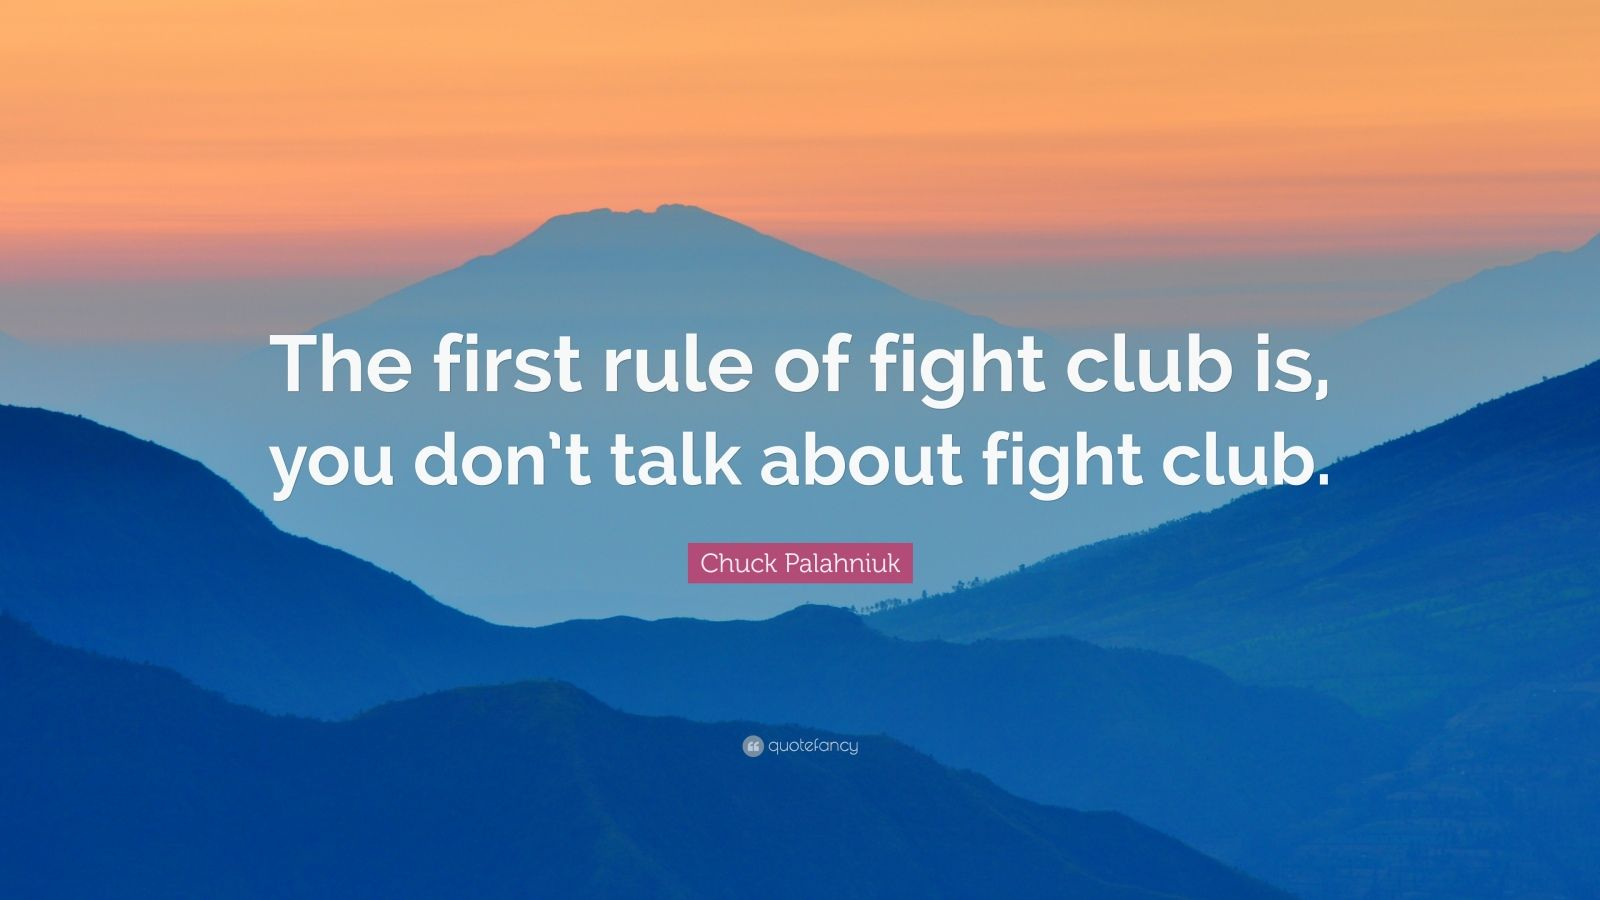 fight club chuck palahniuk essay Fight club and tyler durden essay example first rule of fight club chuck palahniuk's 1996, fight club, started out as a book that inspired a massive following.